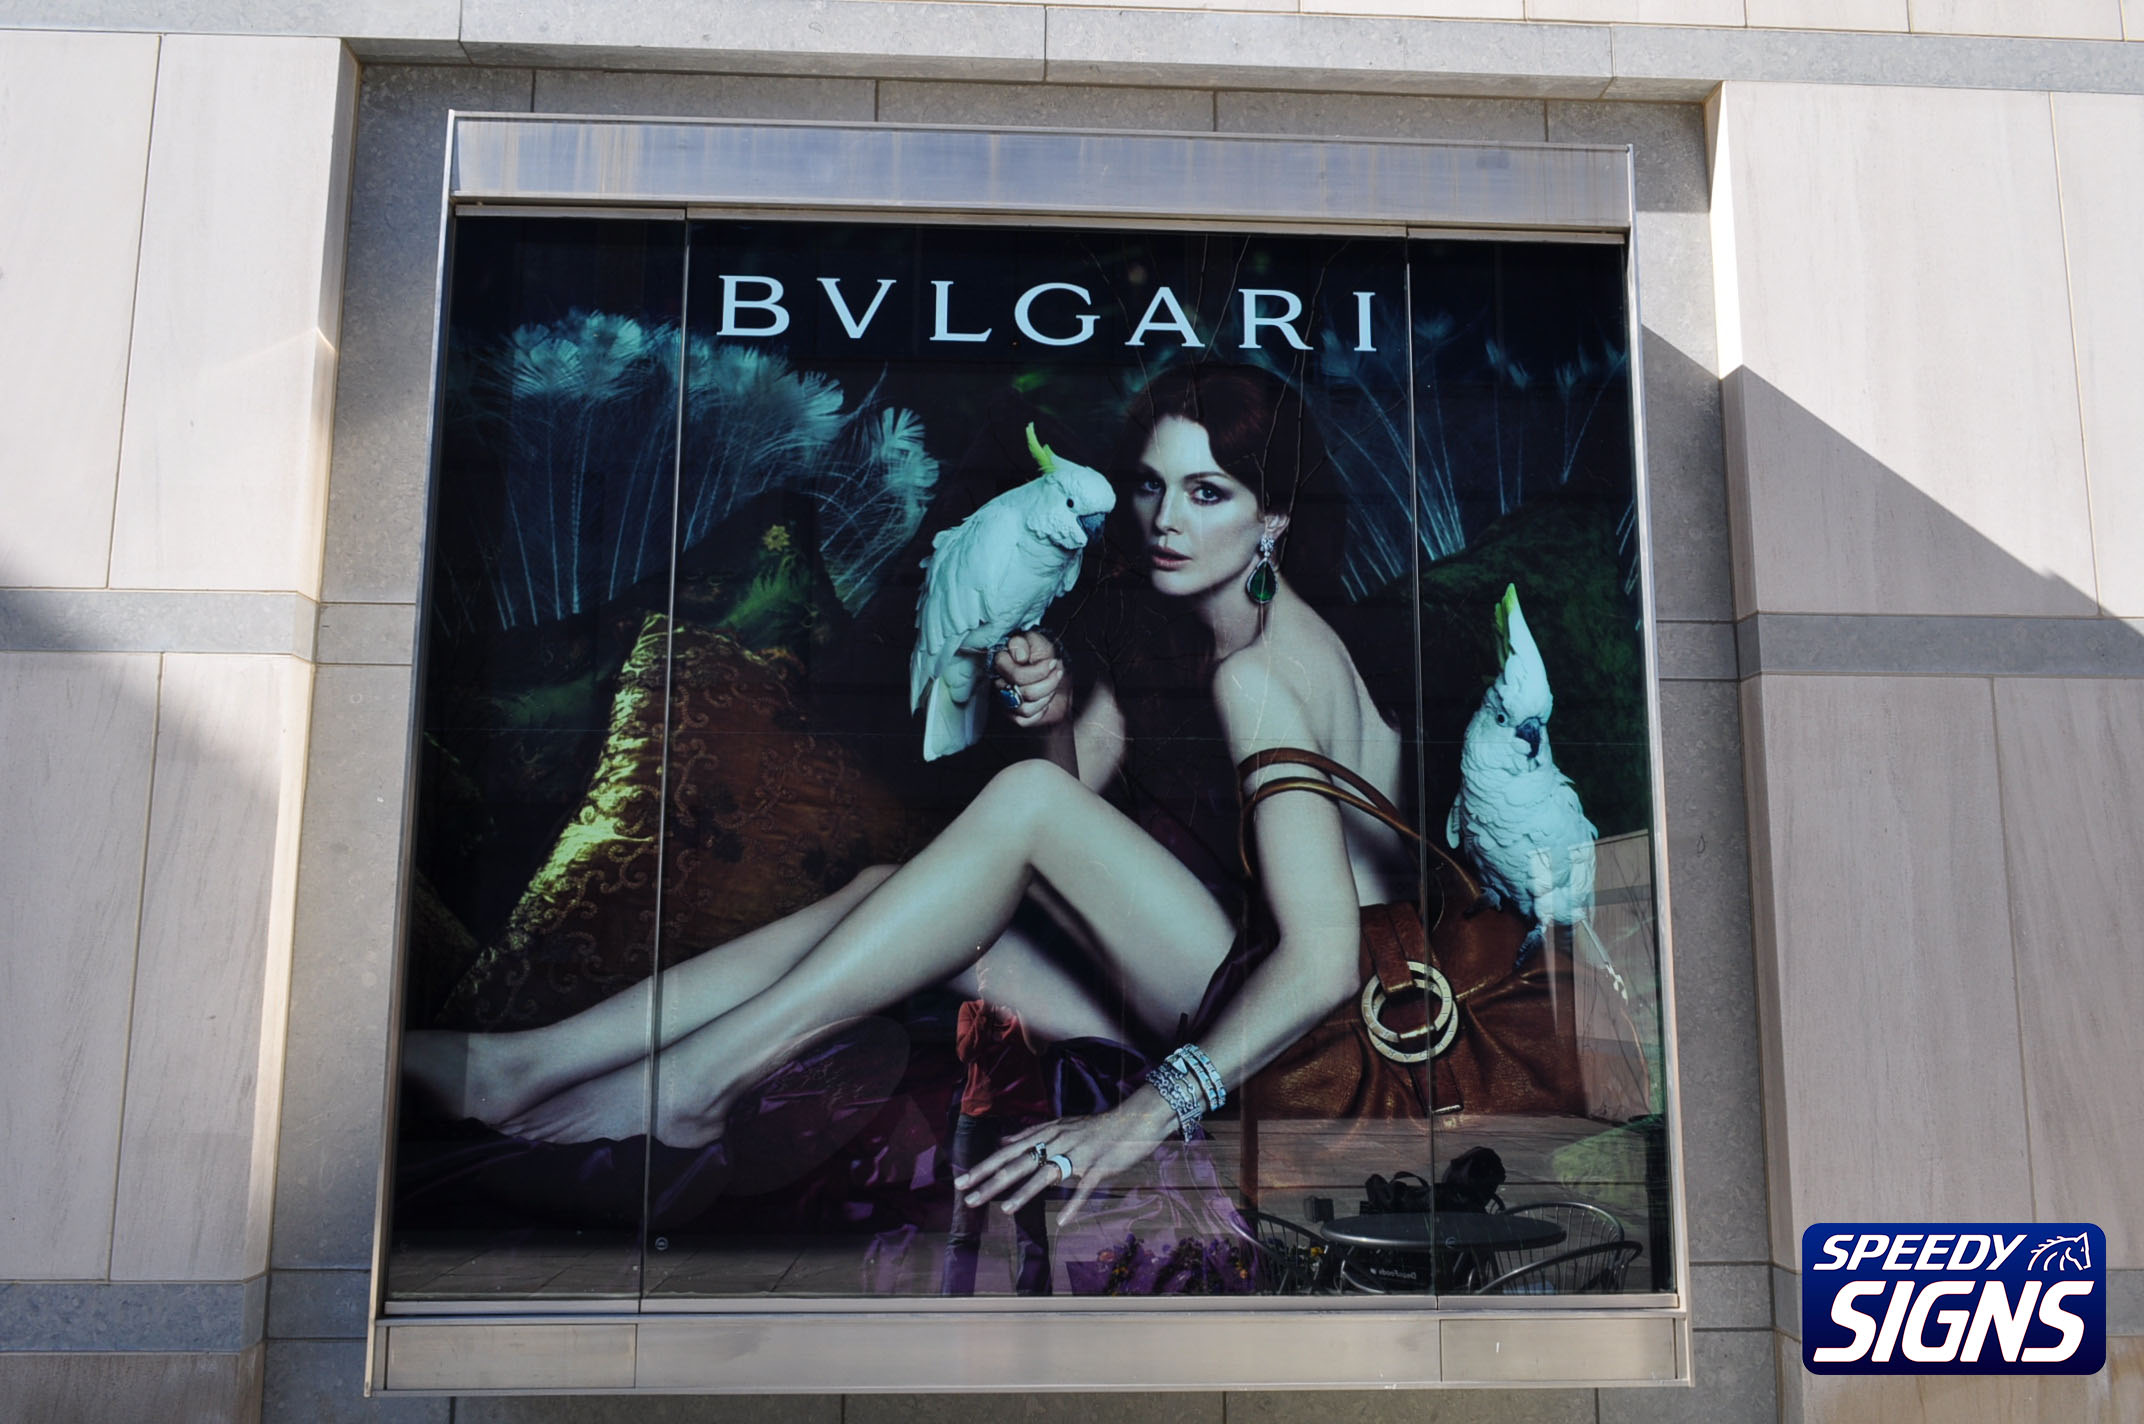 BVLGARI-After-2-New.jpg